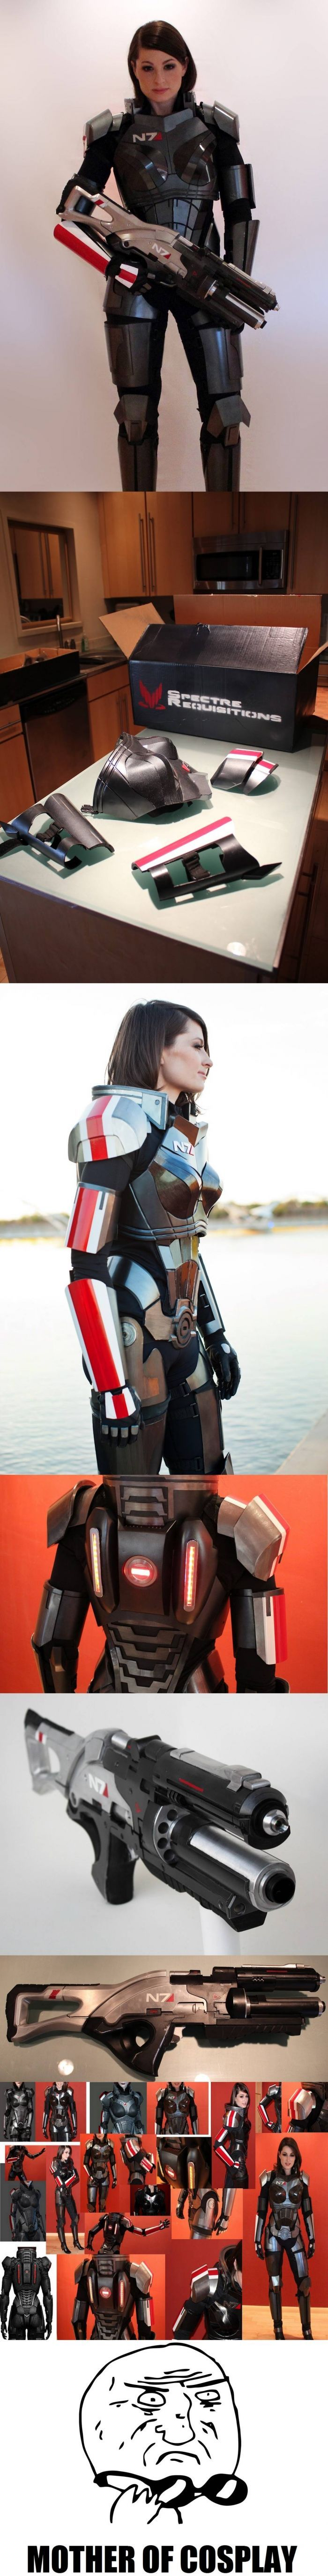 Awesomeness level : Far beyond 9000 (check the source for more pictures of this homemade armor)